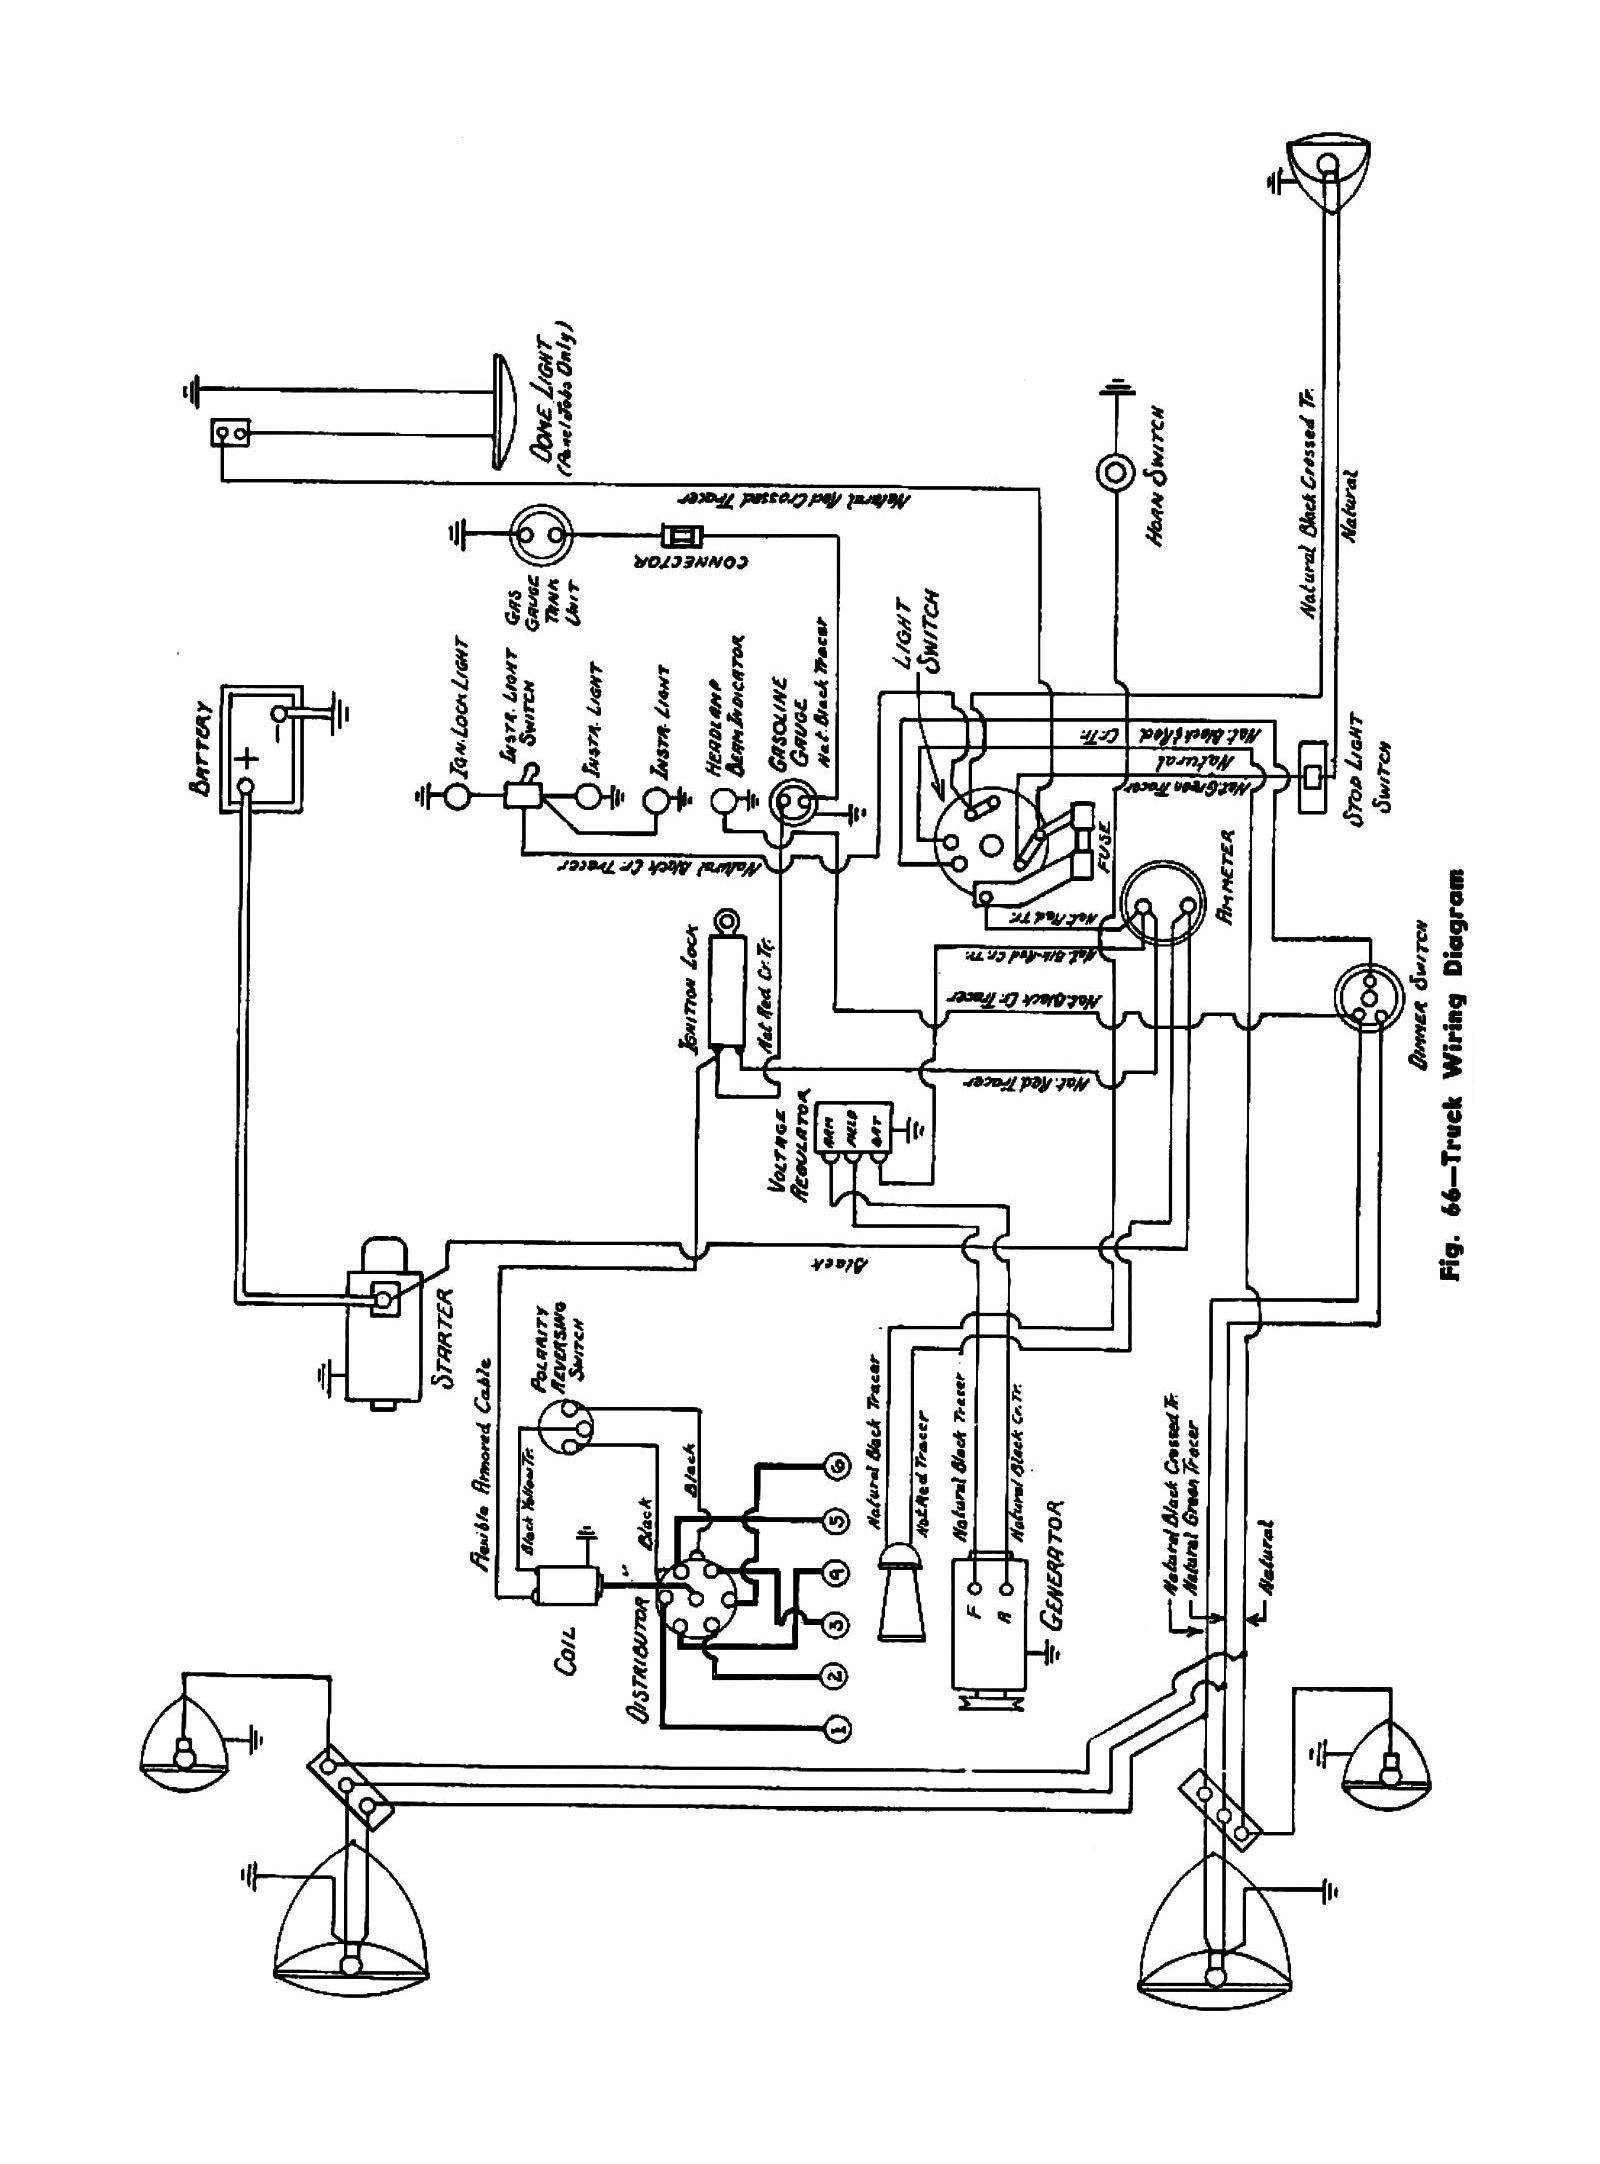 45truck ihc truck wiring diagrams mazda truck wiring diagrams \u2022 free  at metegol.co